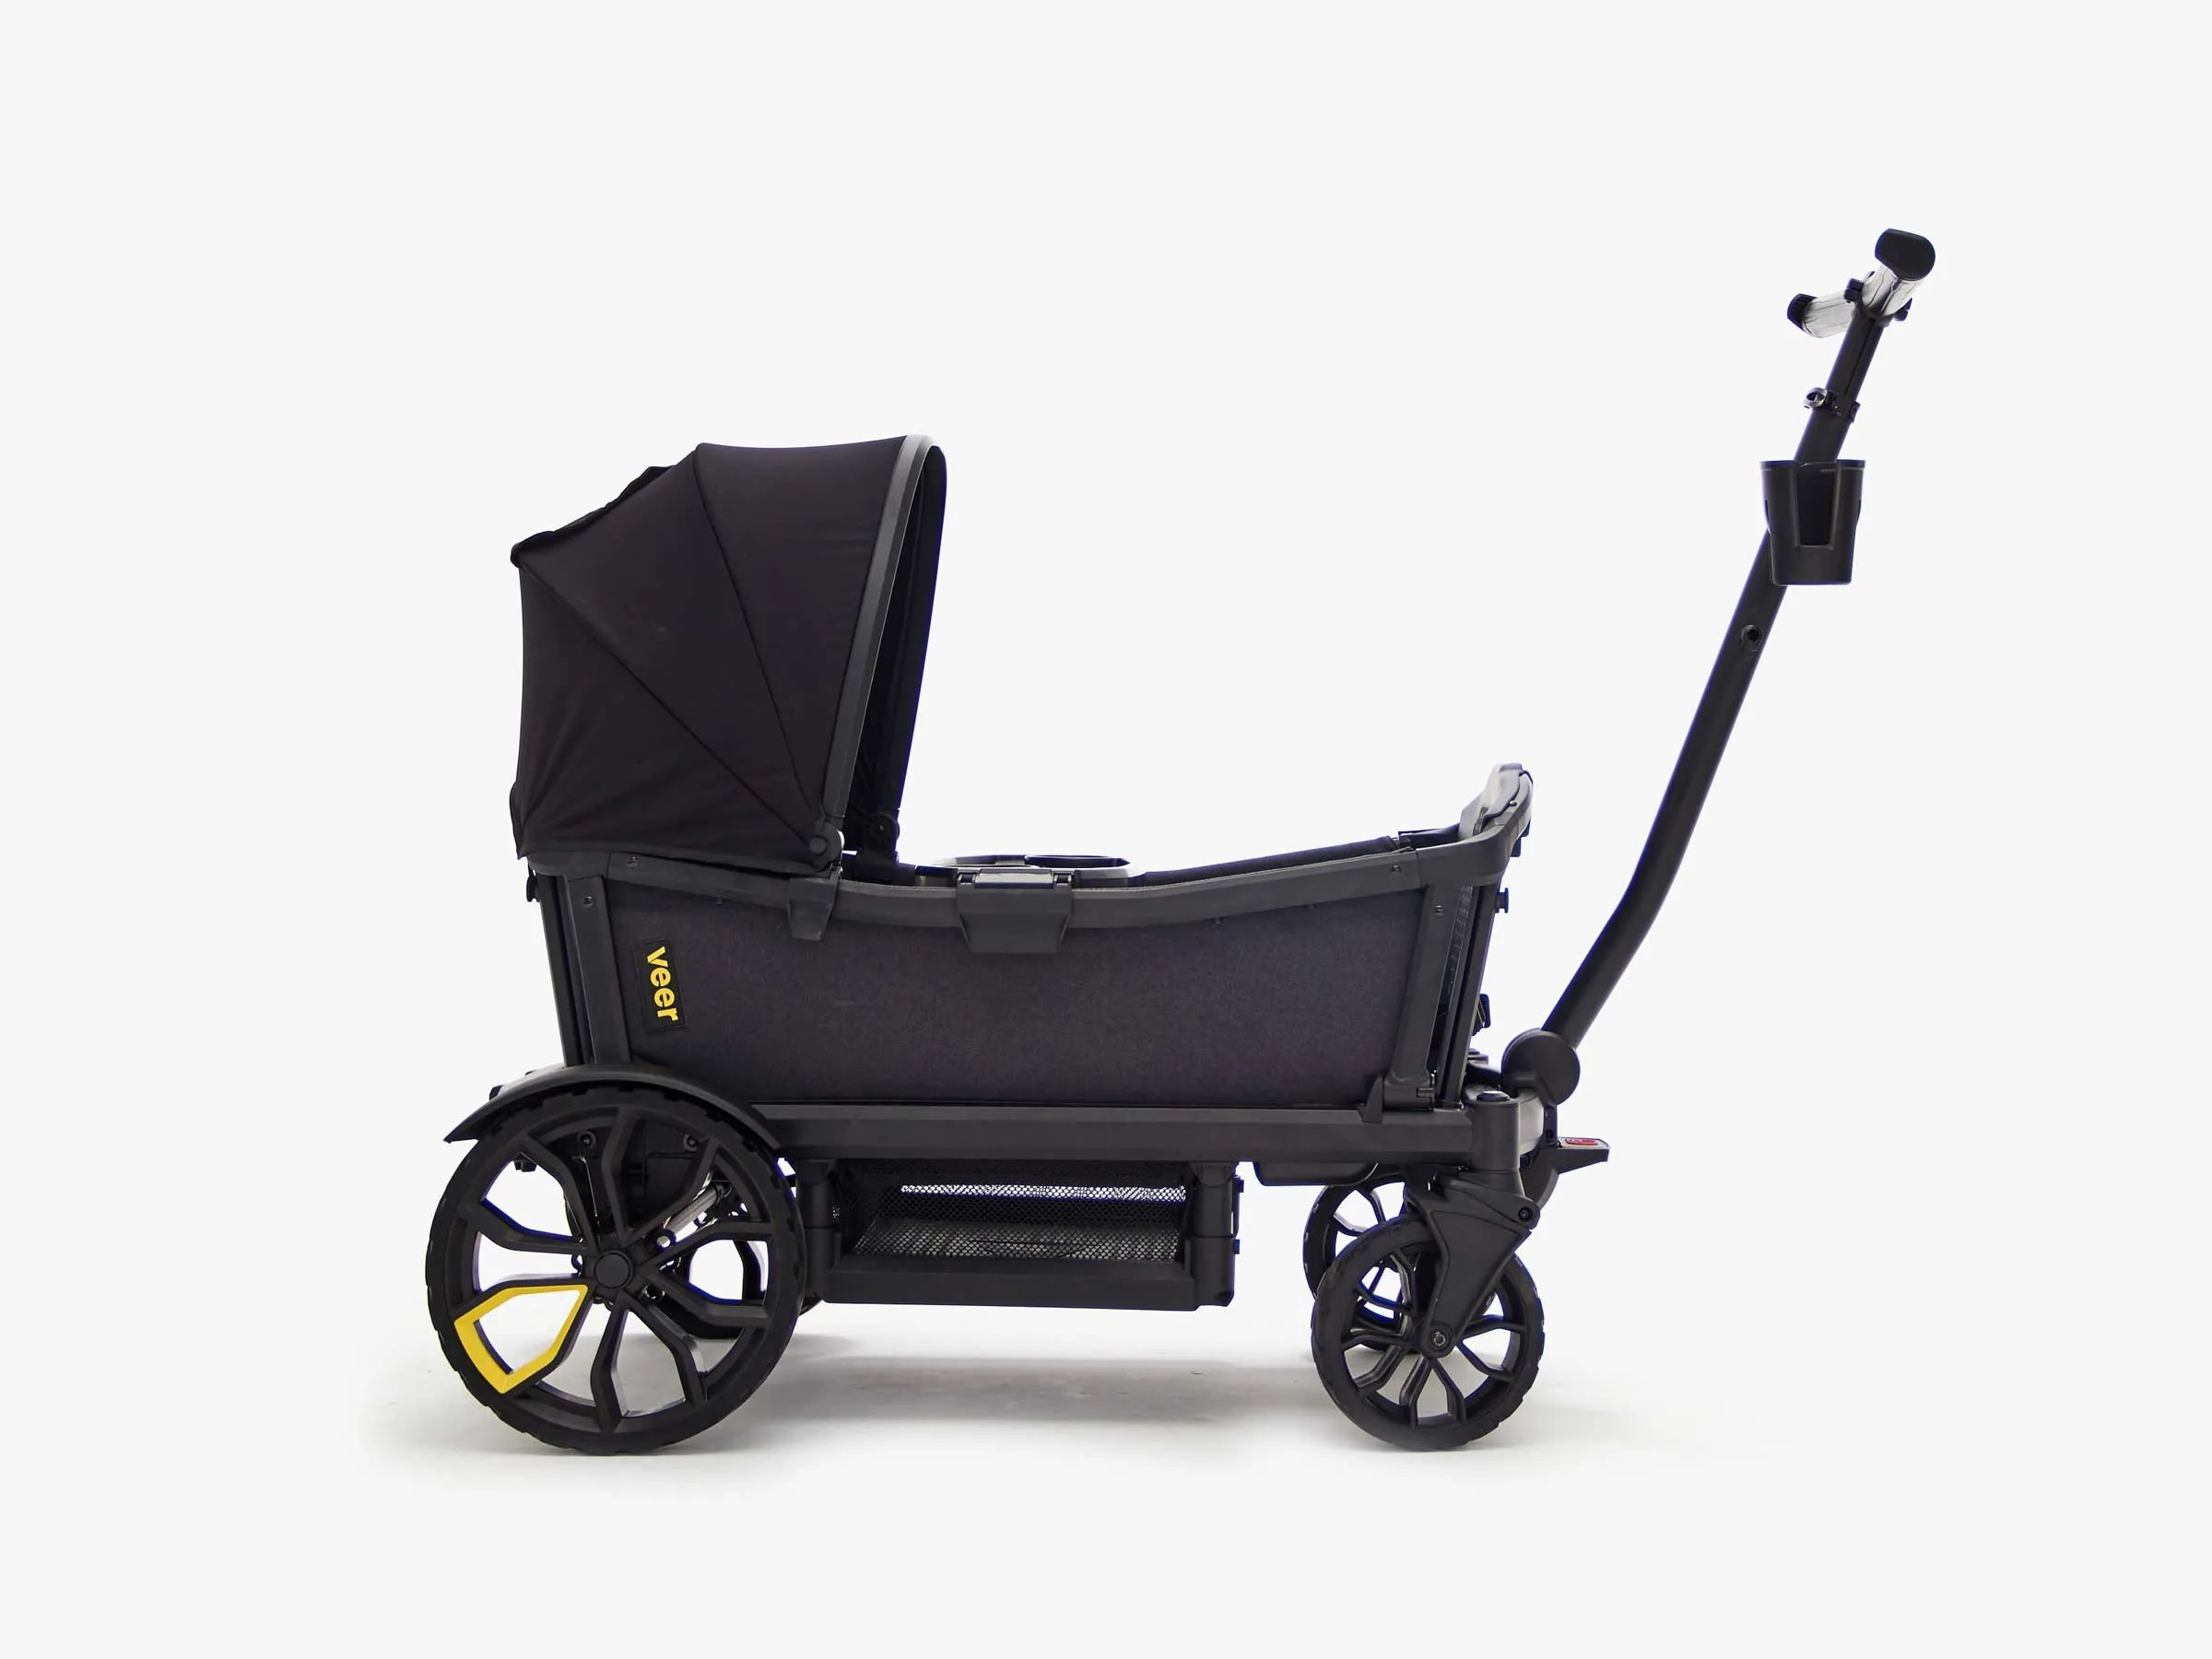 Double Stroller Expensive Veer Cruiser Review It Carries Your Kids In Comfort Off Road And On